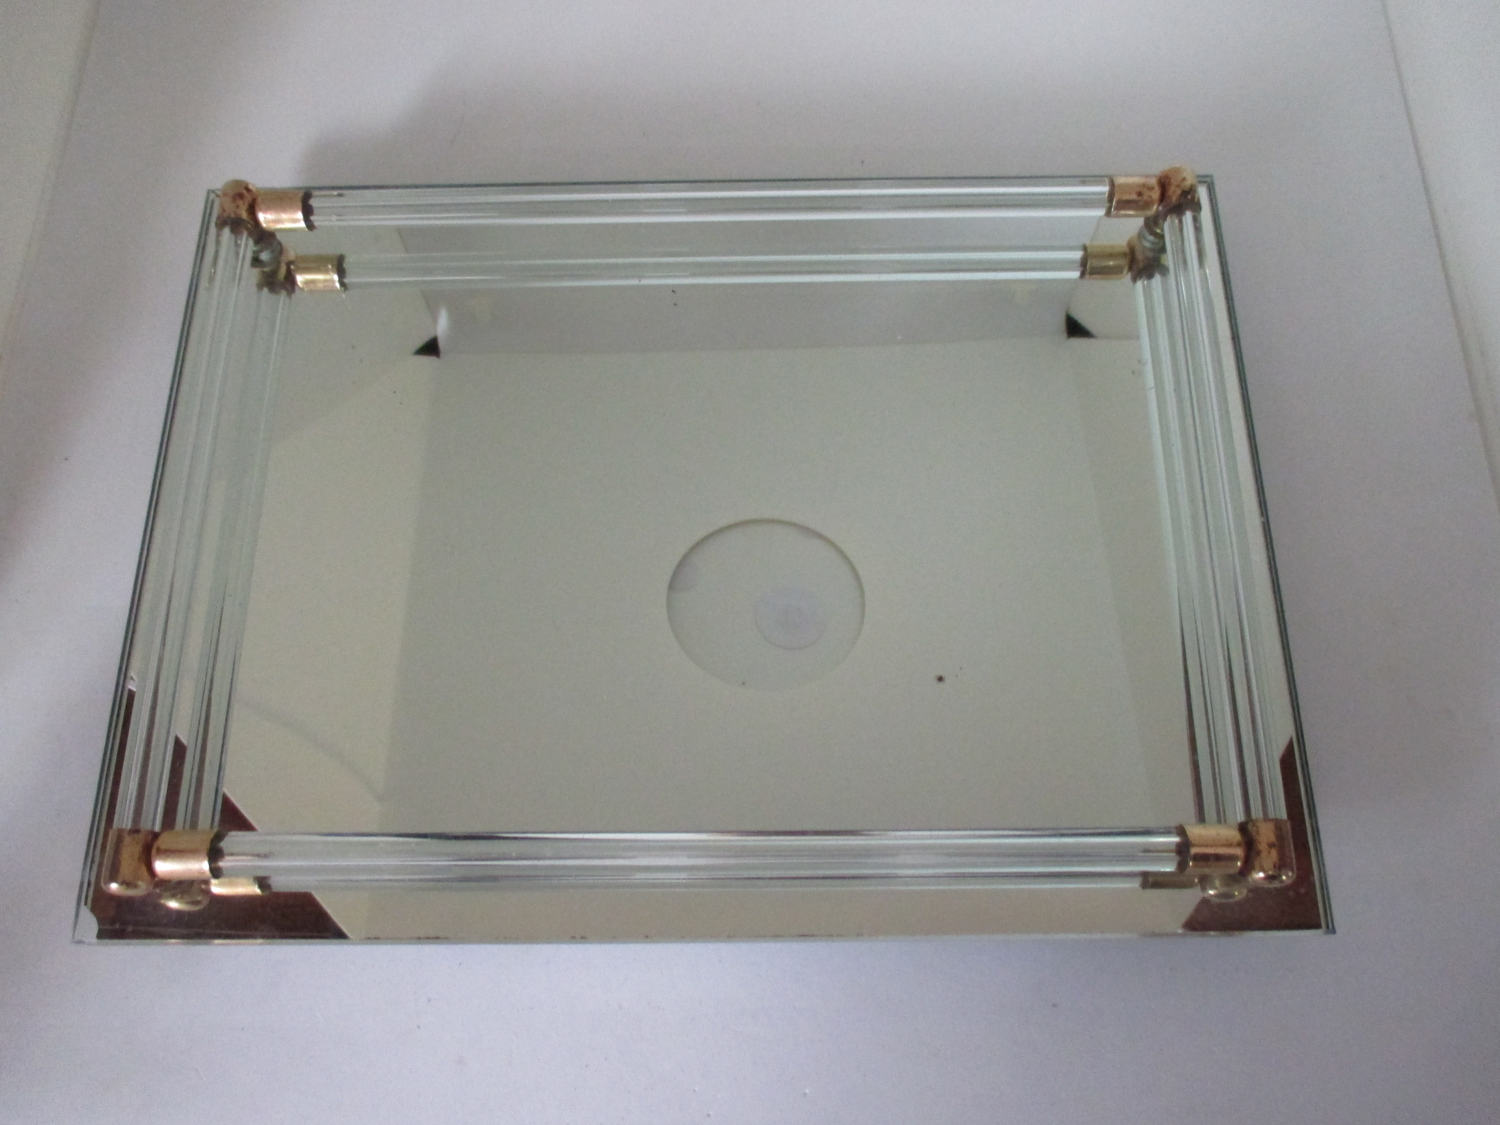 Mirrored Glass Vanity Vintage Dresser Vanity Tray Mirrored Glass With Glass Rods